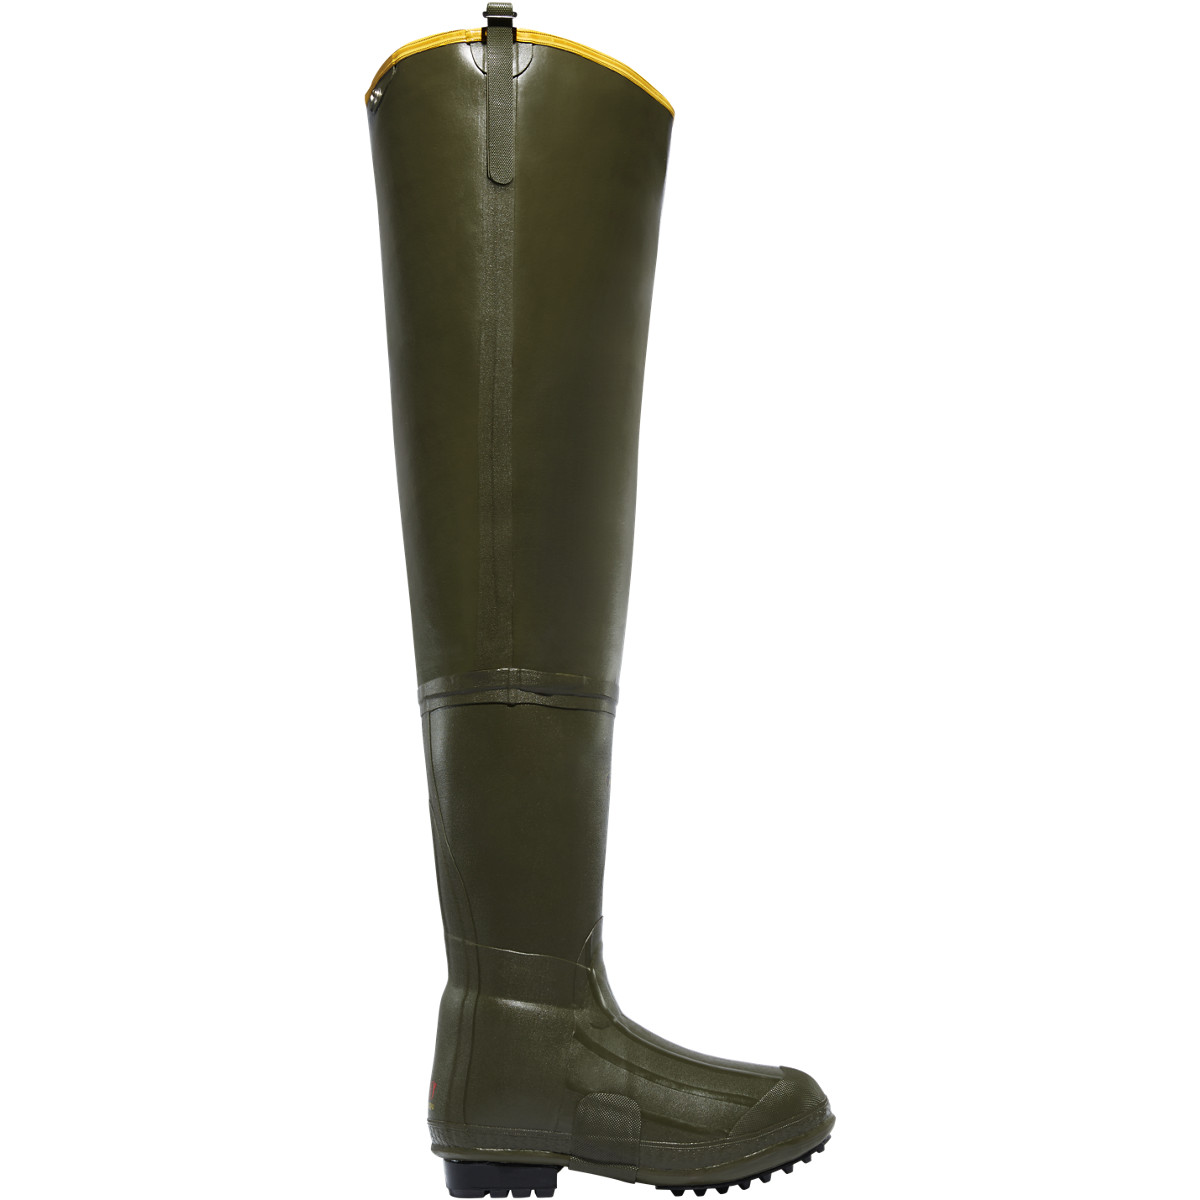 "Lacrosse Men's Big Chief 32"" 600G Insulate Hip Waders, Gr..."